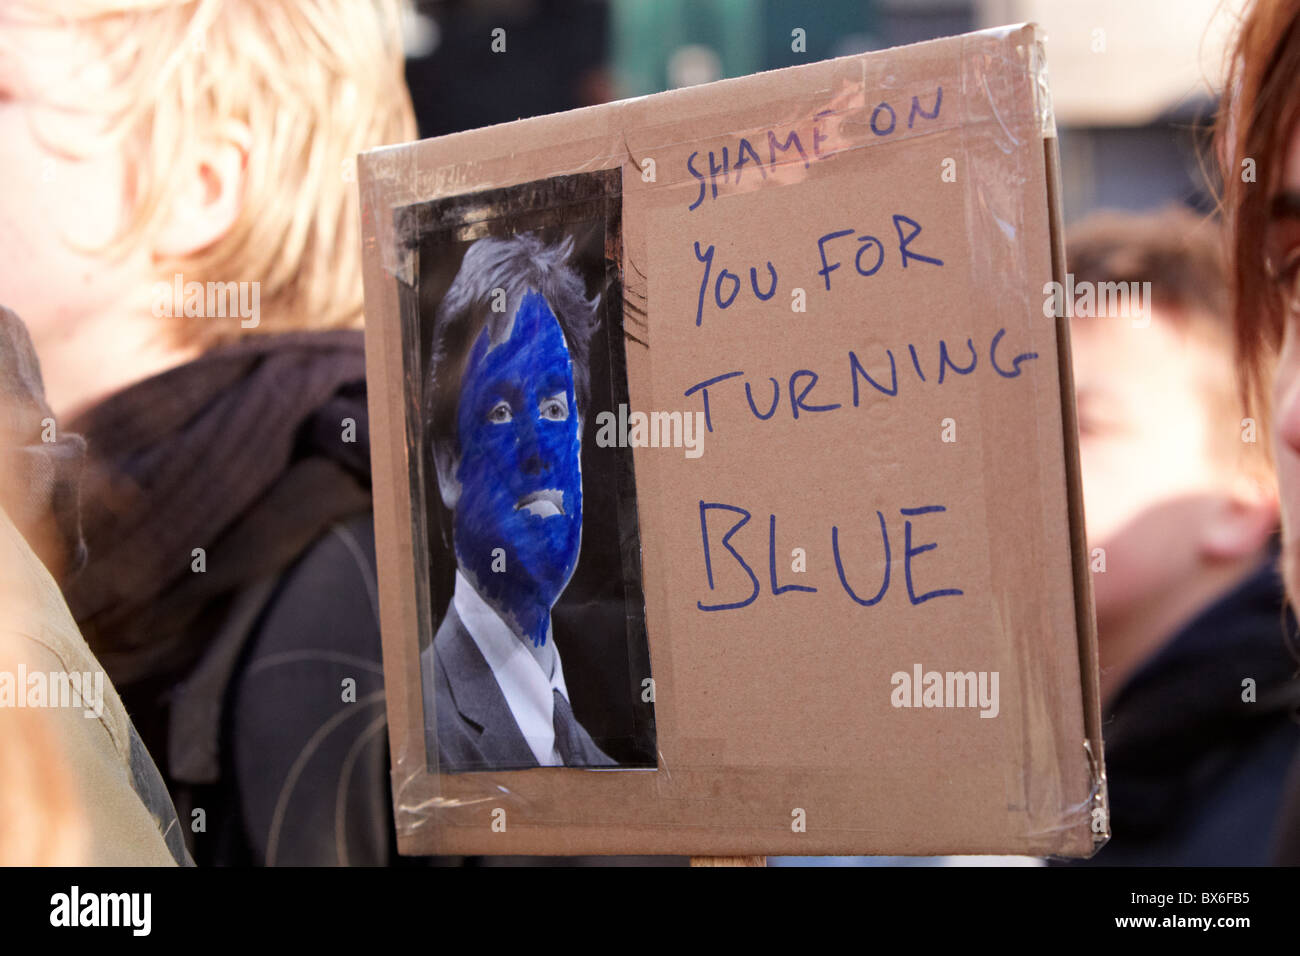 Placard carried during student protest against tuition fees - Stock Image